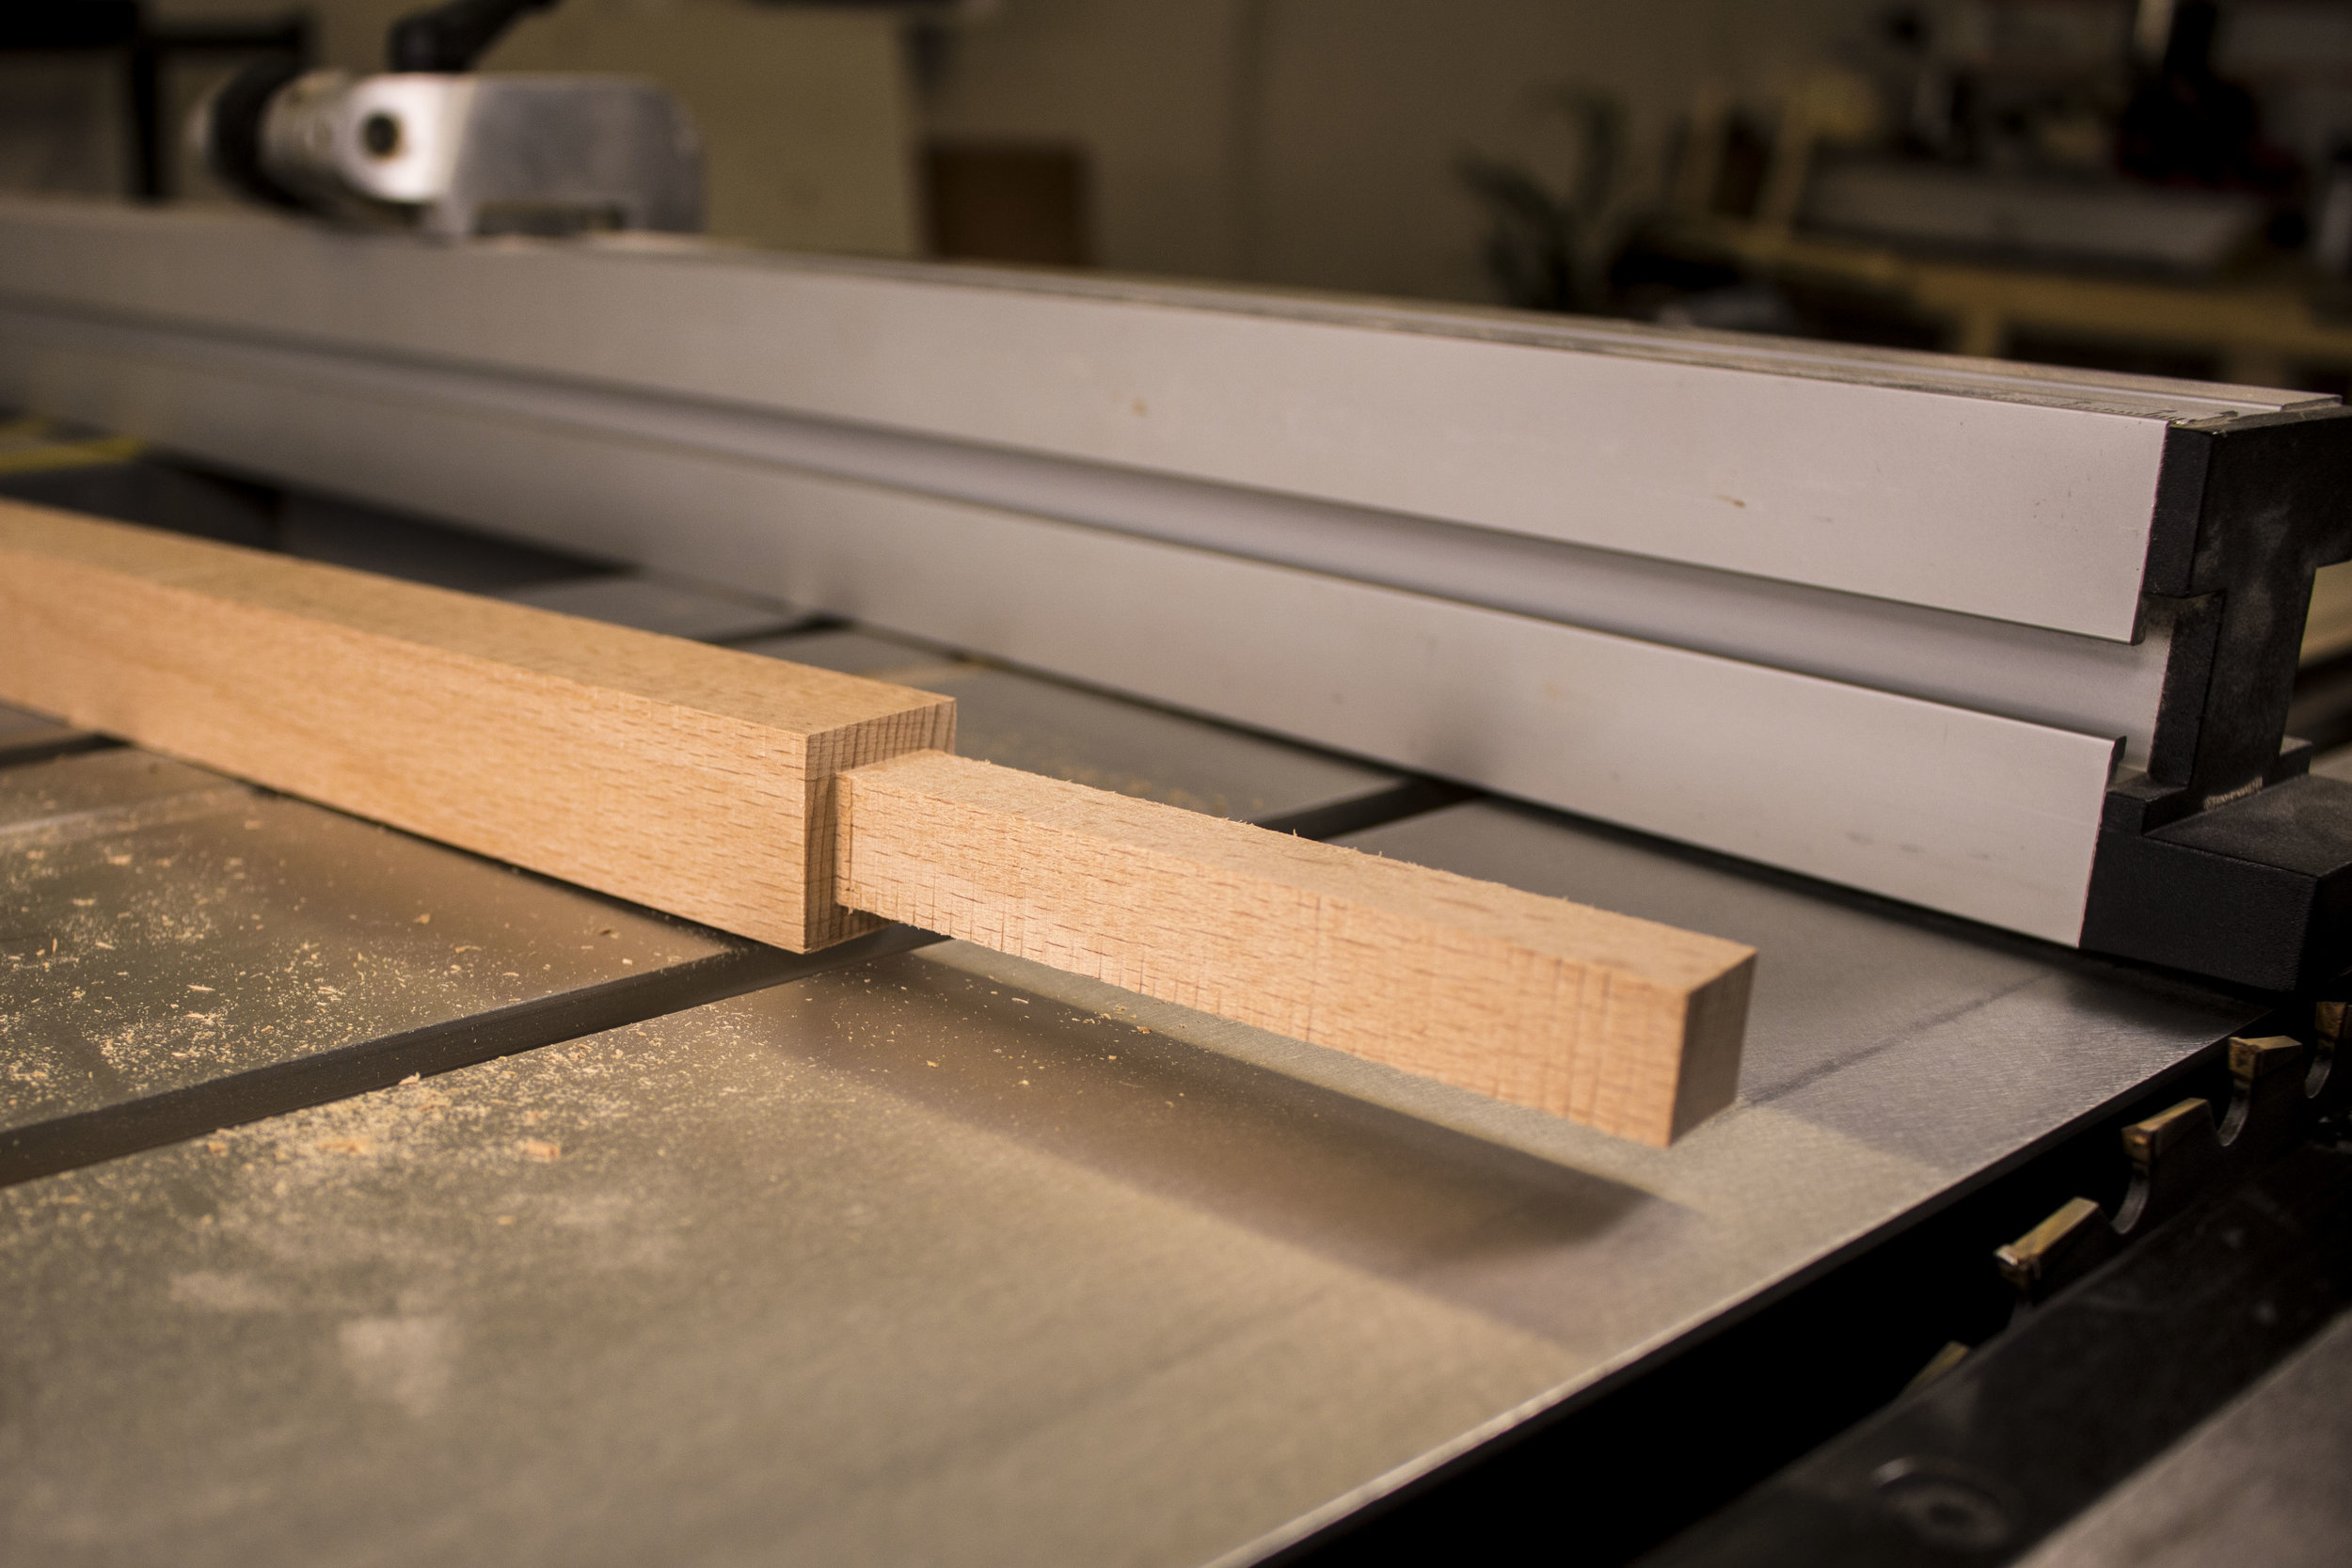 Saw the hanger thinner using the format saw. From the top of it 100 mm and to the depth of 5 mm.